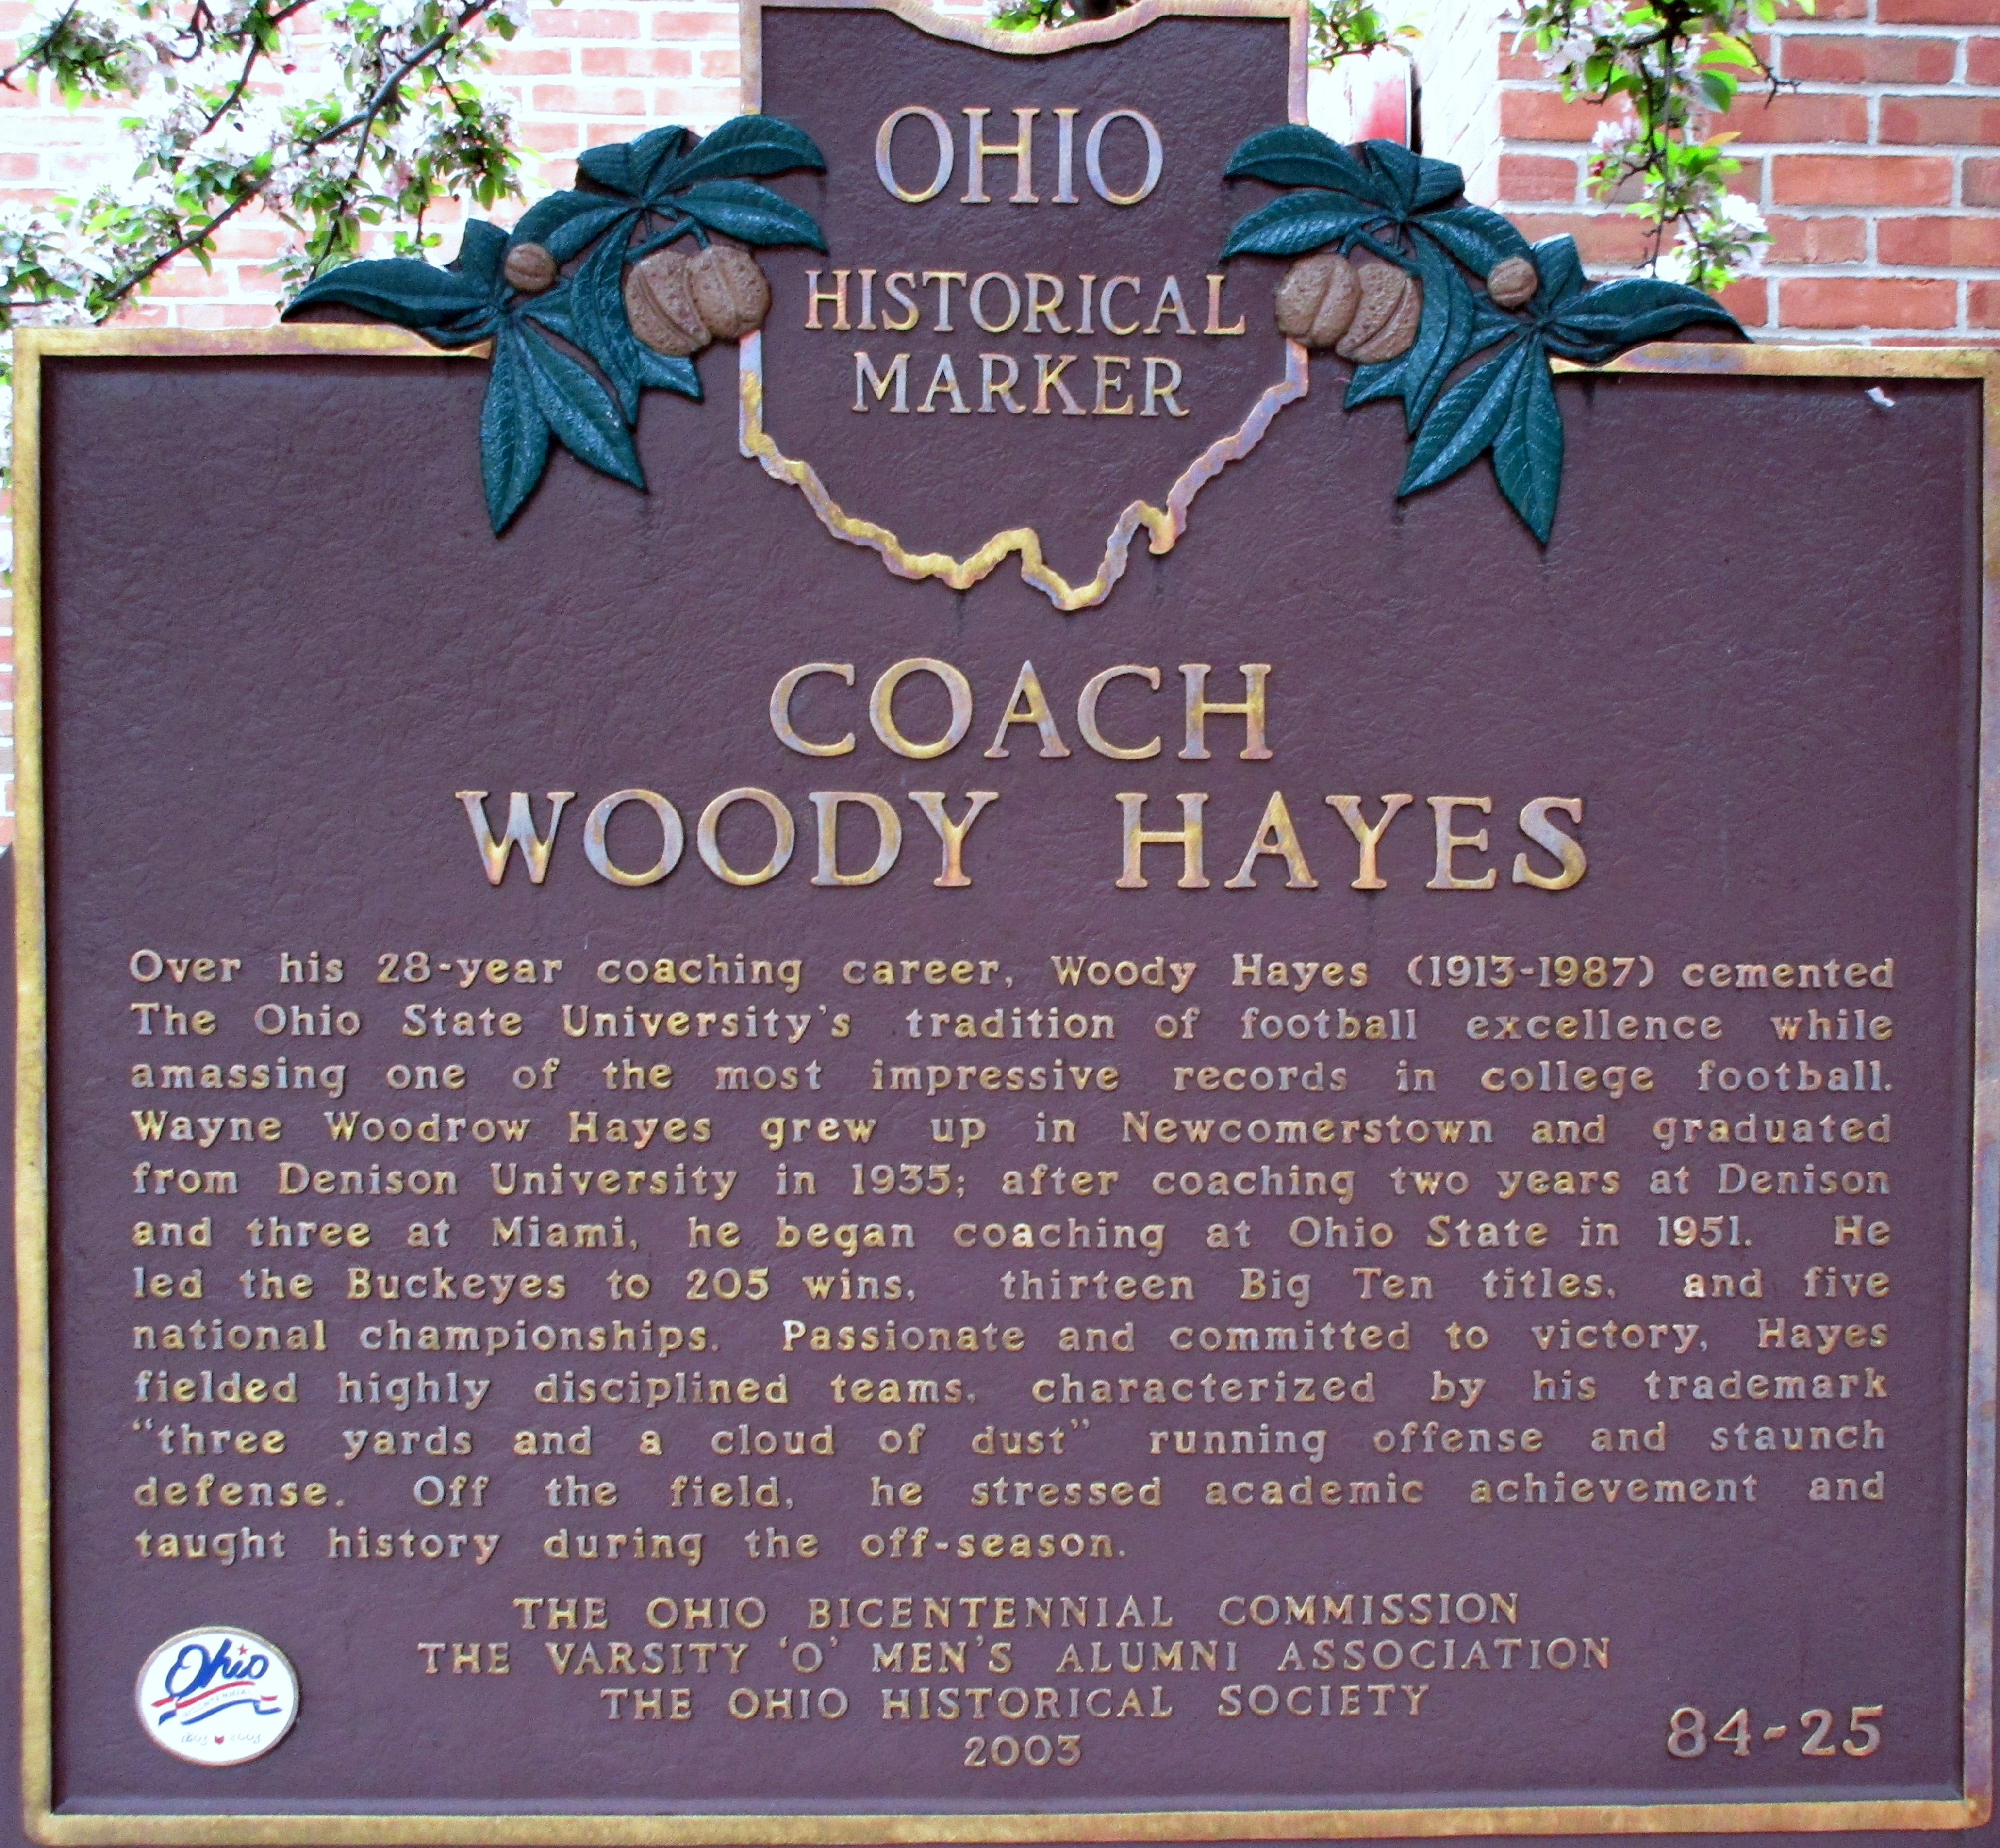 Coach Woody Hayes Marker